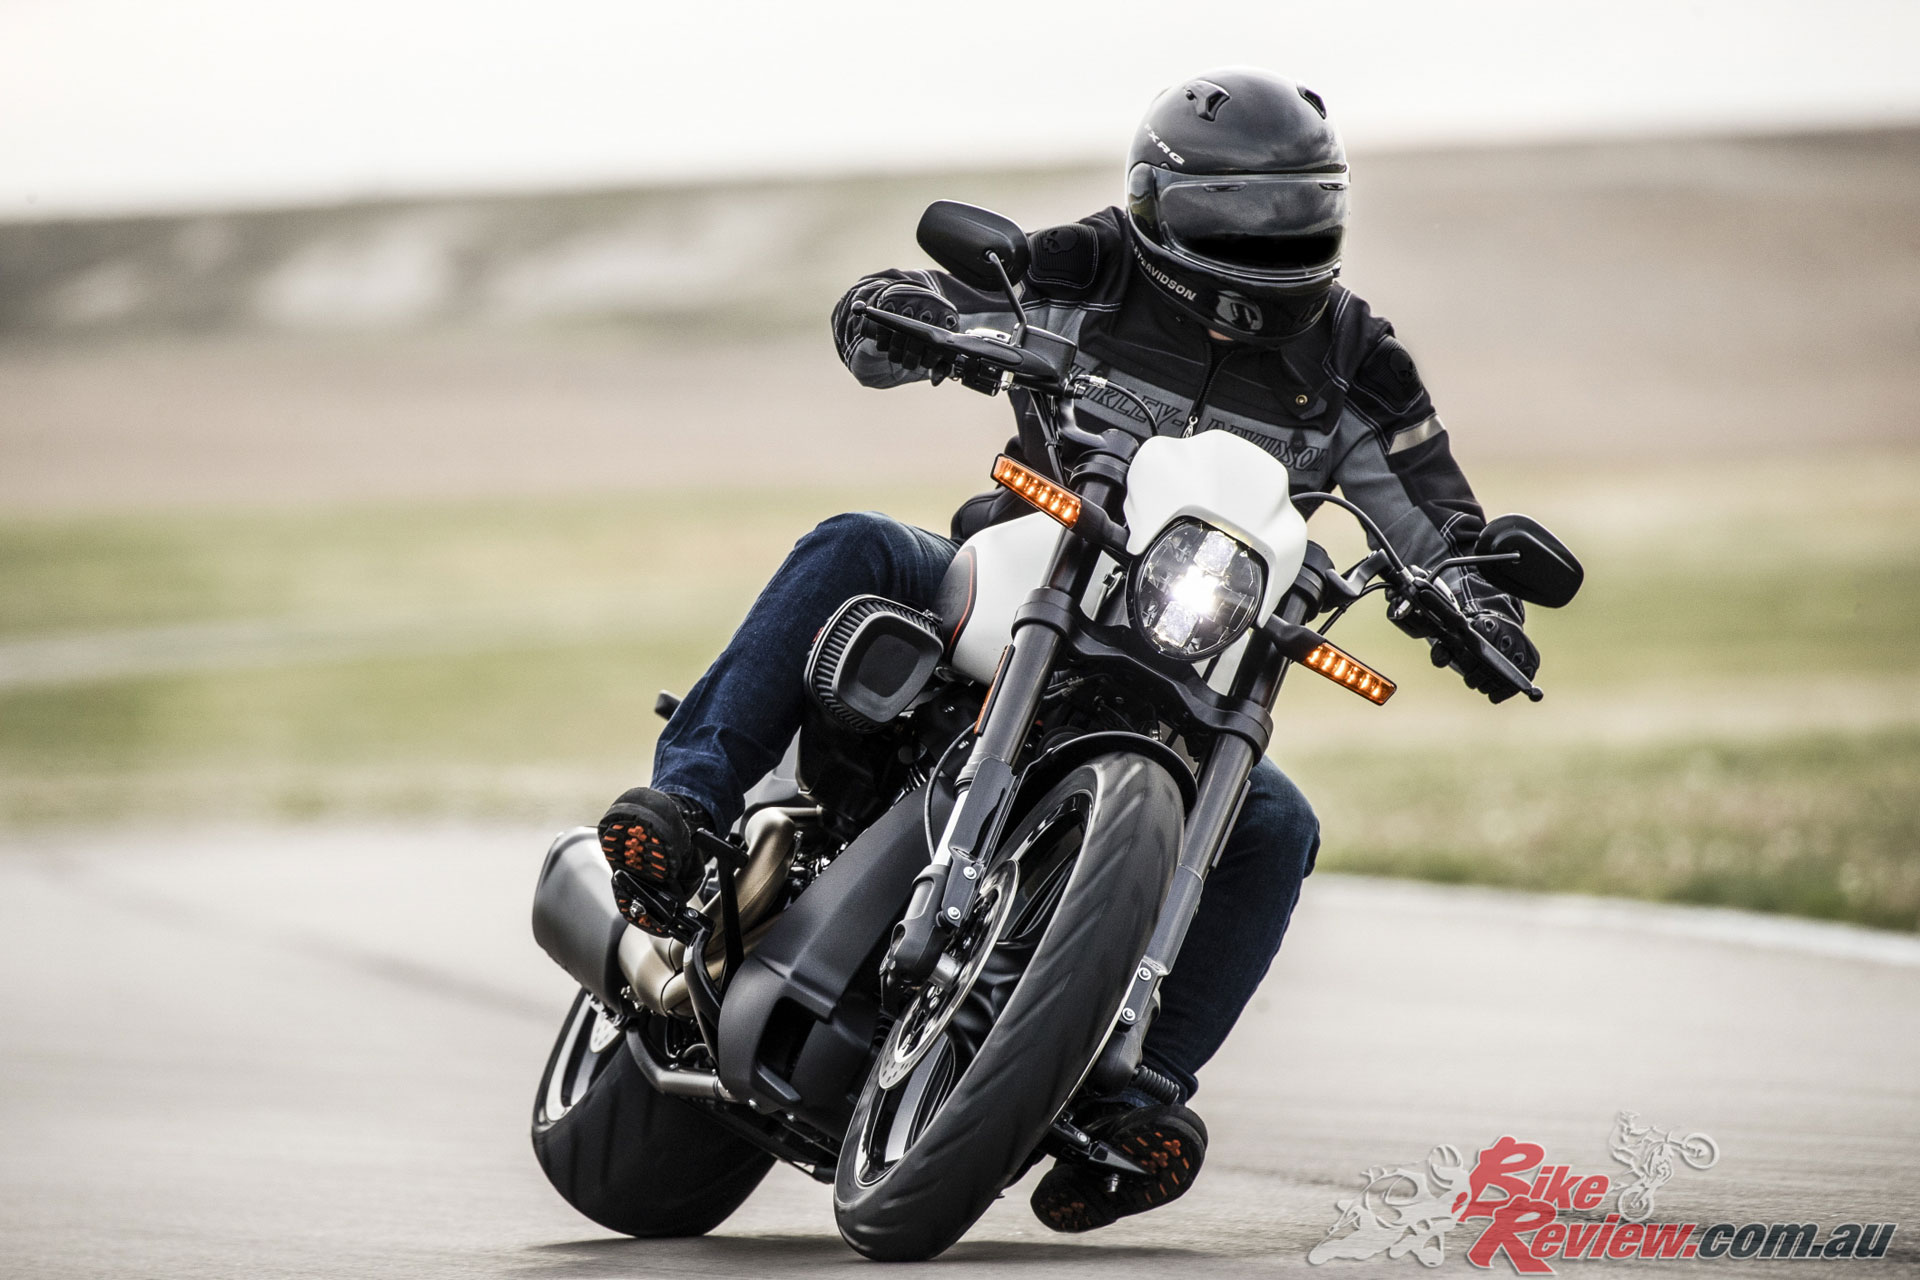 New Models 2019 Harley Davidson Fxdr 114 Review: Harley-Davidson Introduce 2019 FXDR 114 Power Cruiser